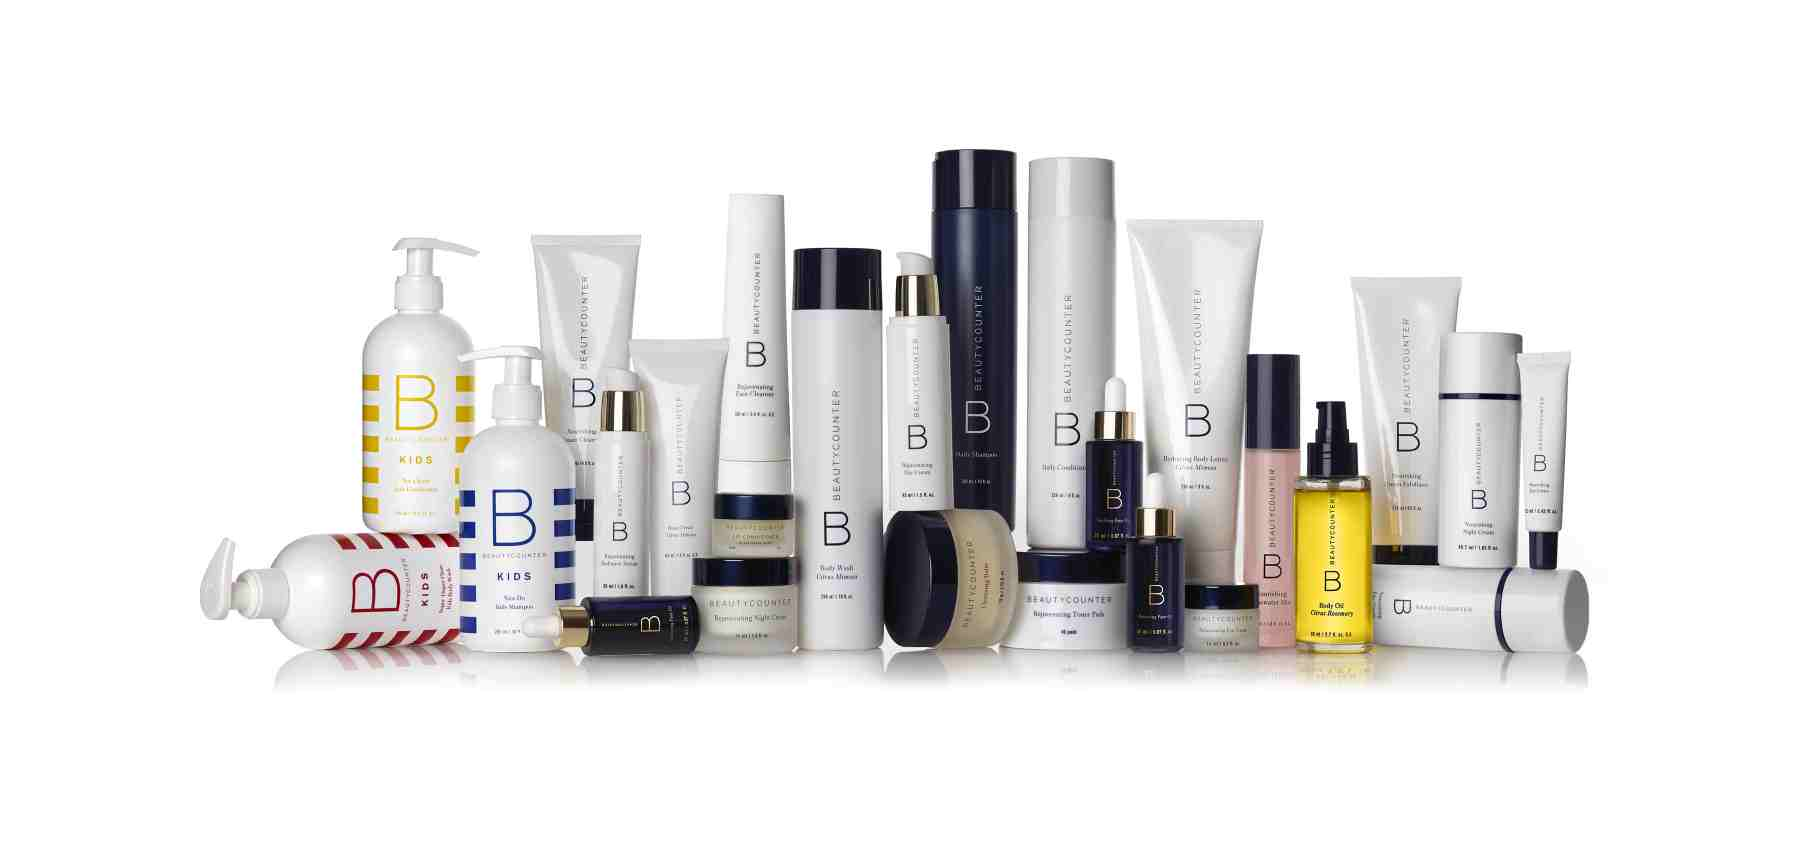 Beautycounter products